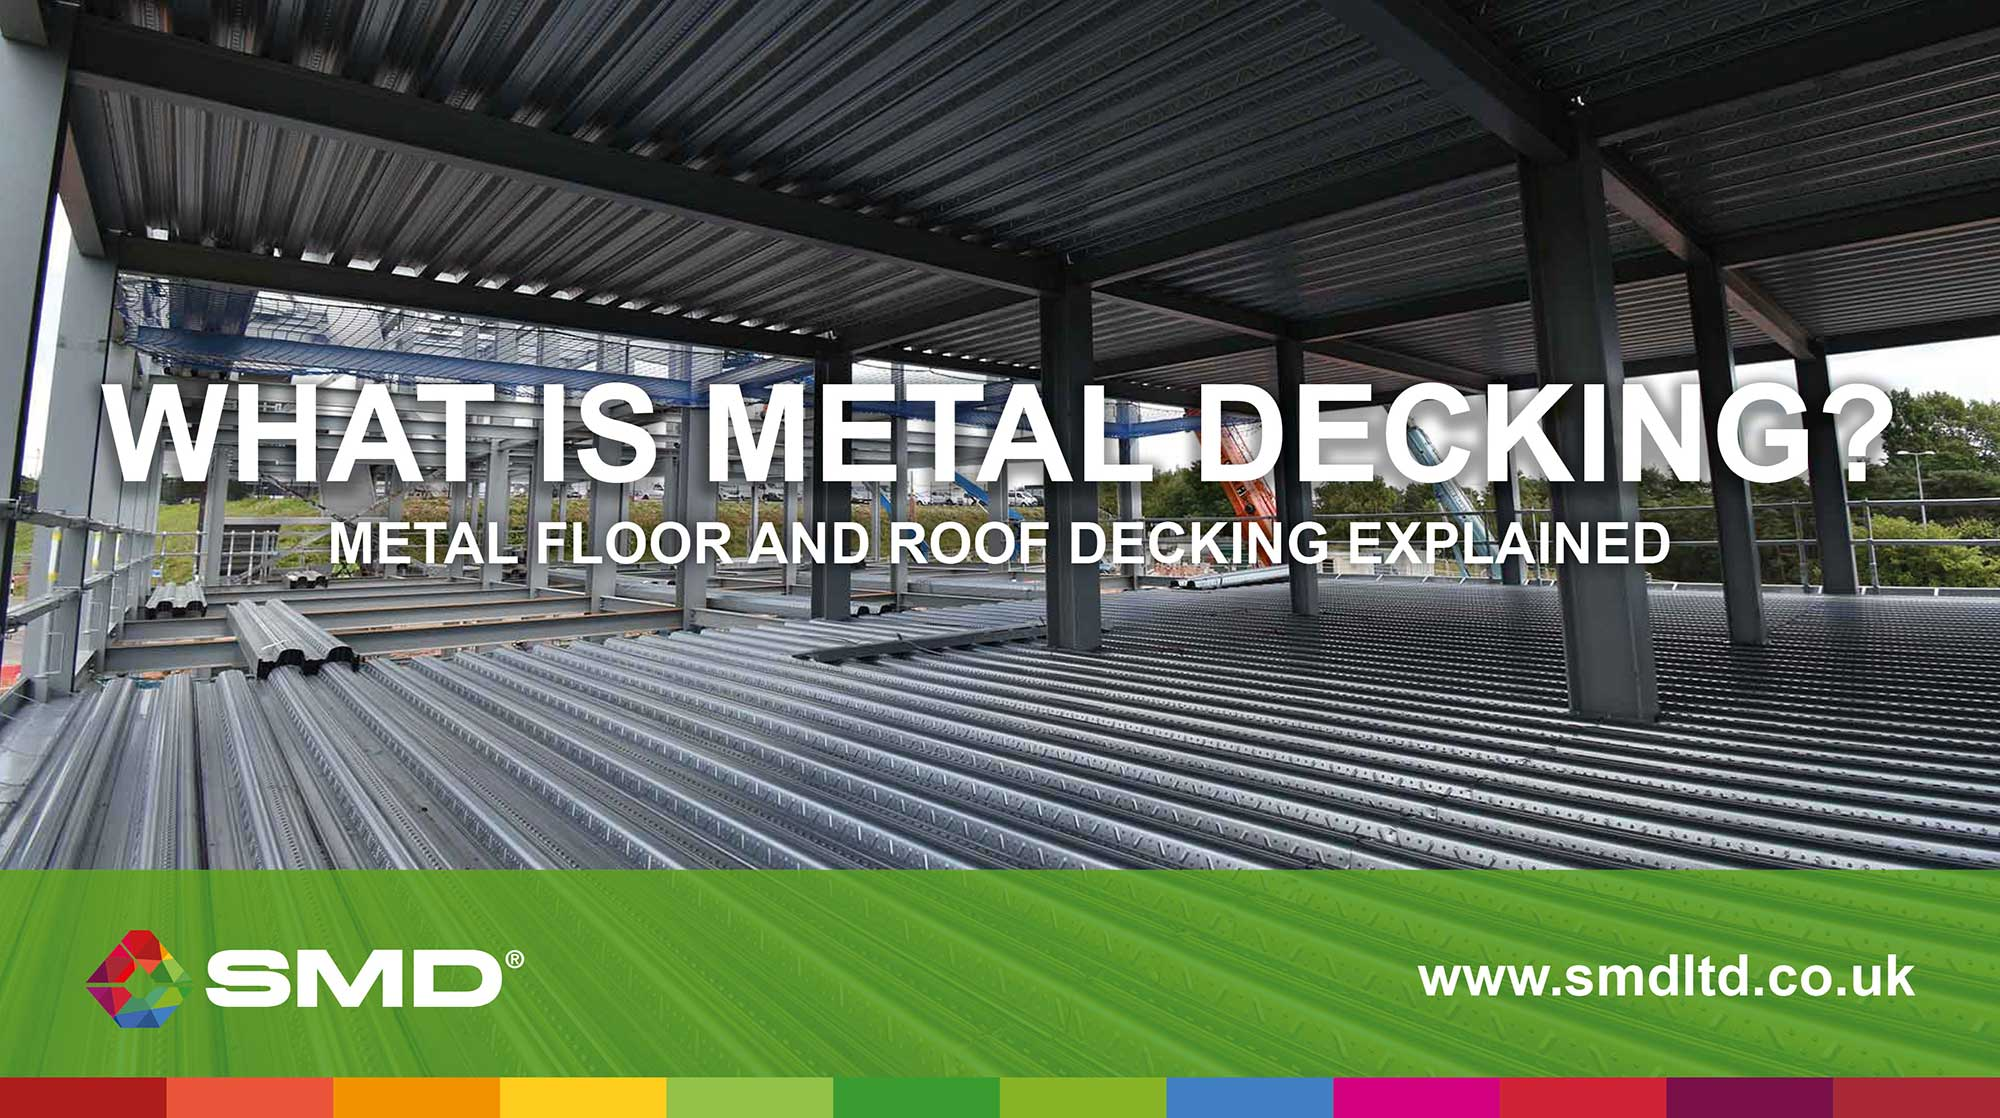 What is metal decking